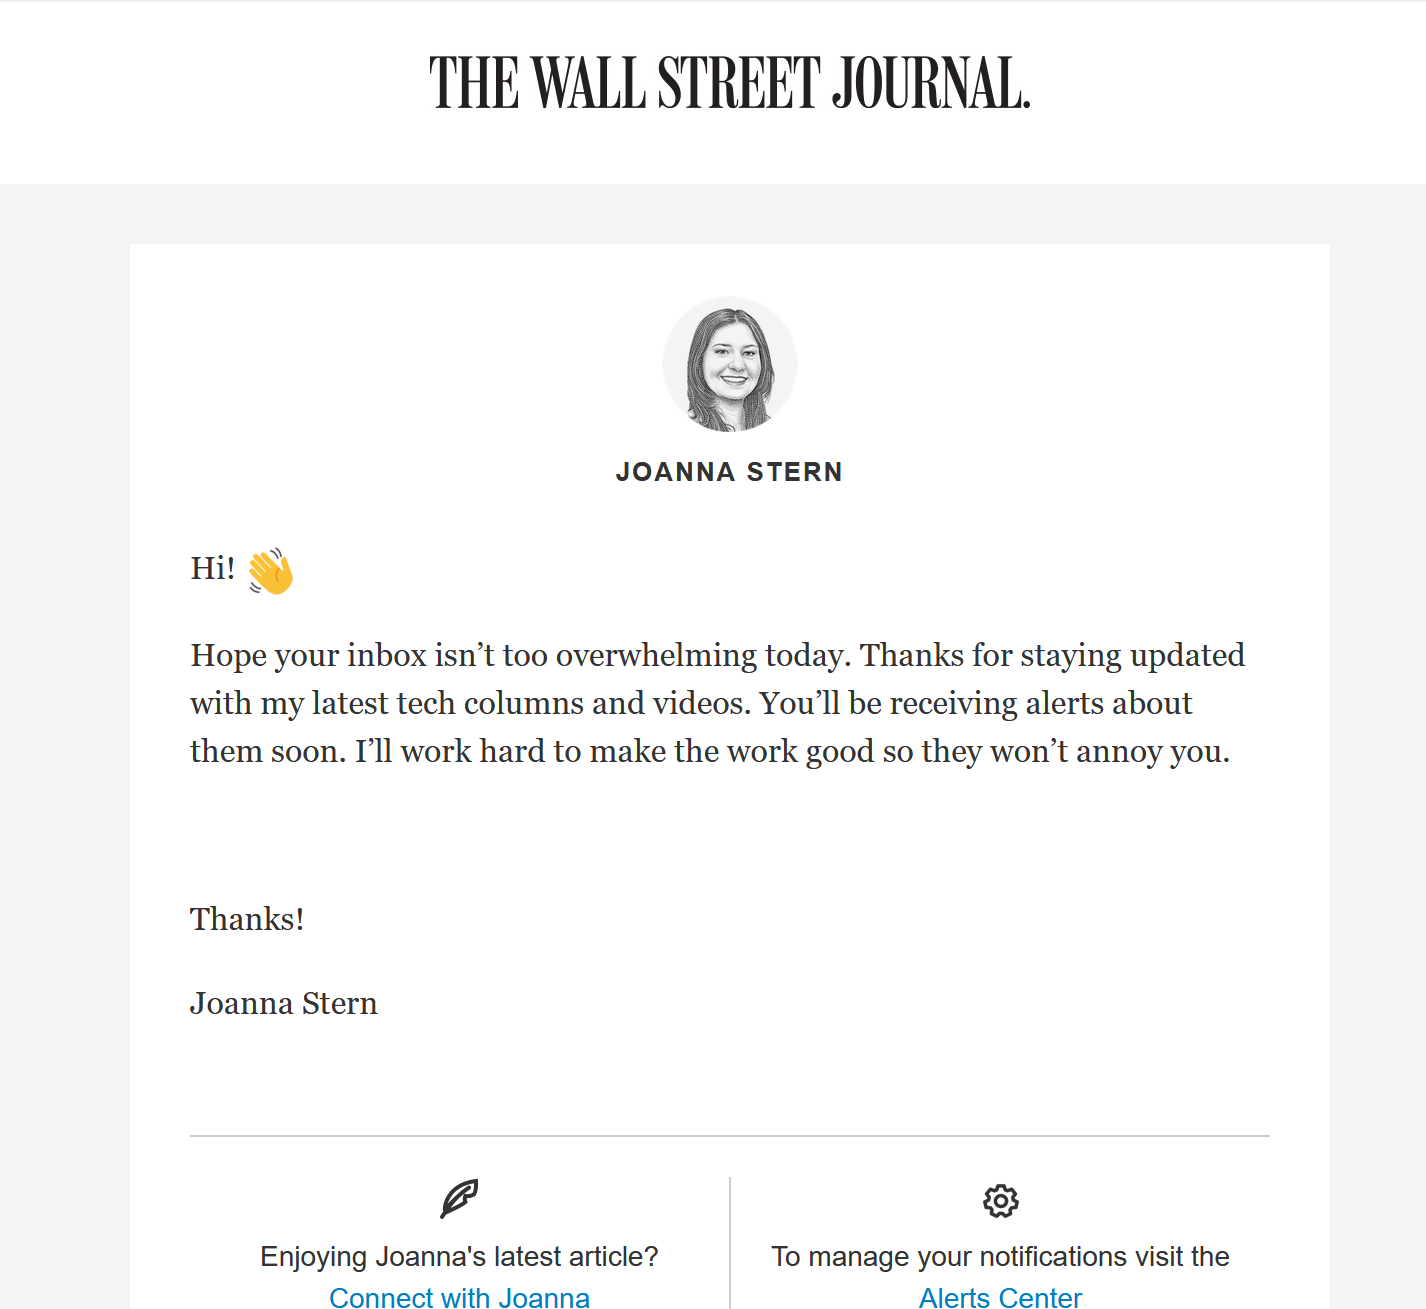 wsj-email-example